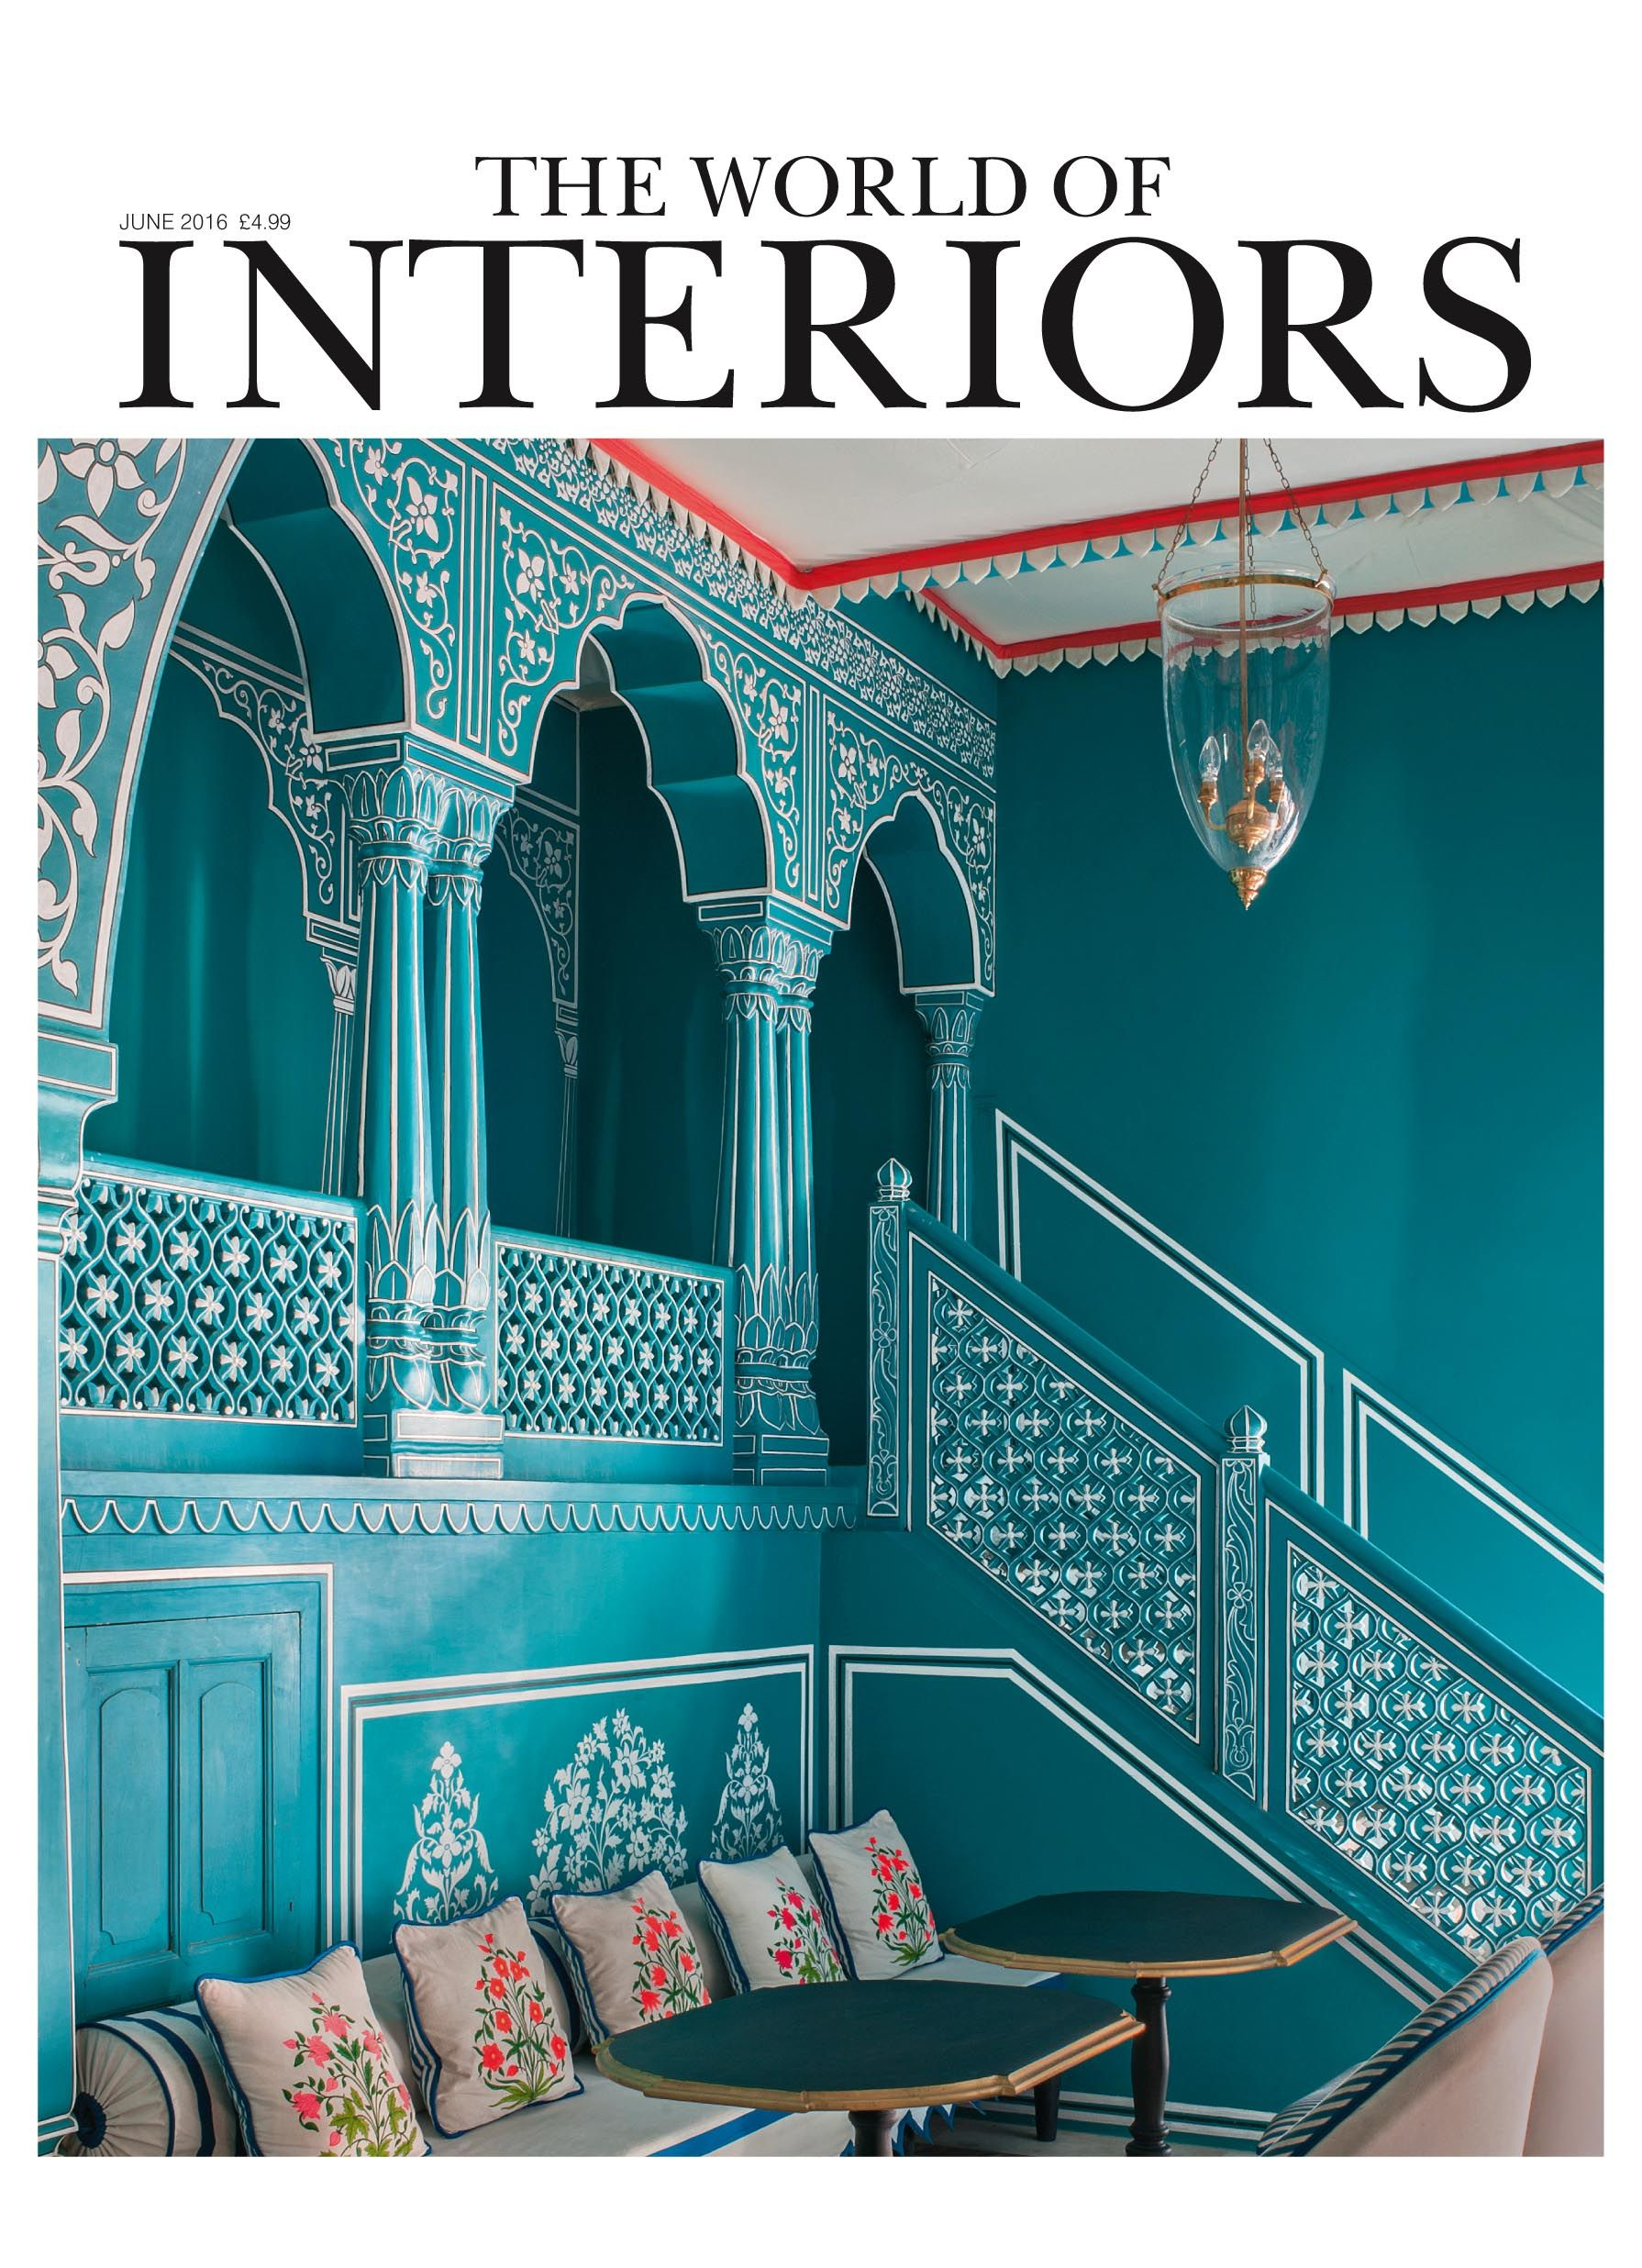 Interior Design Magazines Chose Another One Of The Best Interior